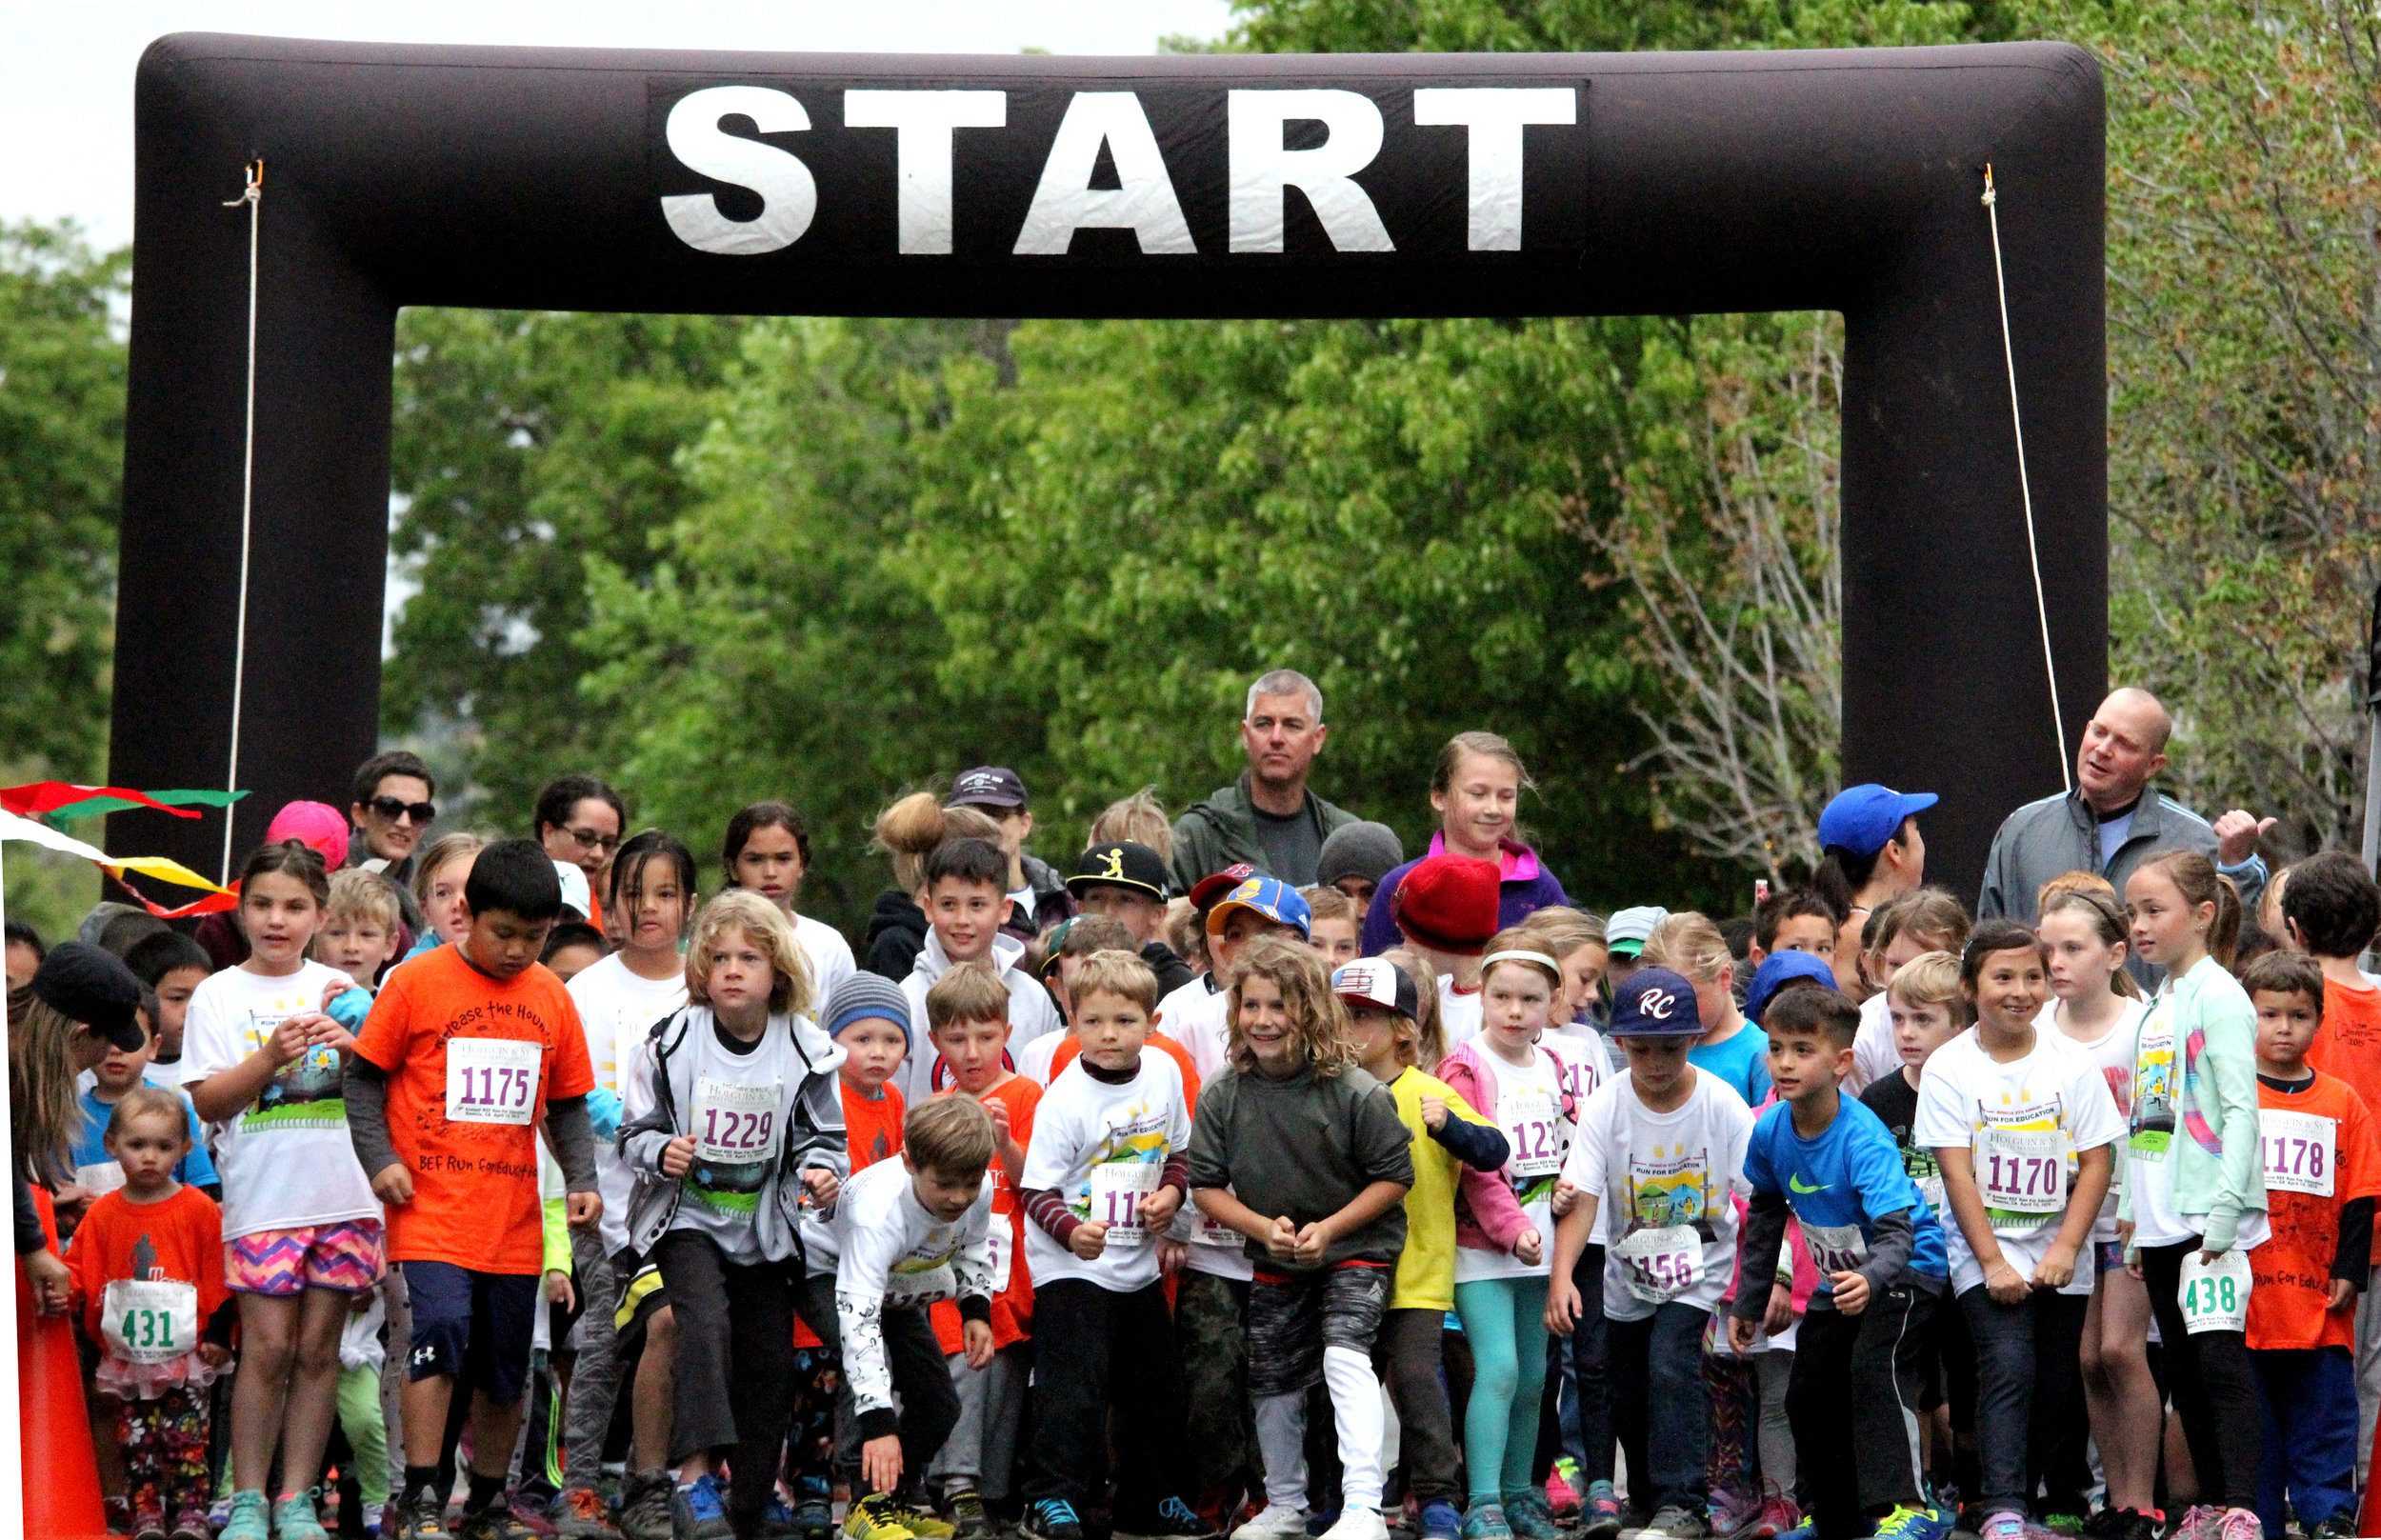 Scenic, fun-Run for Education-David Fwins.jpg